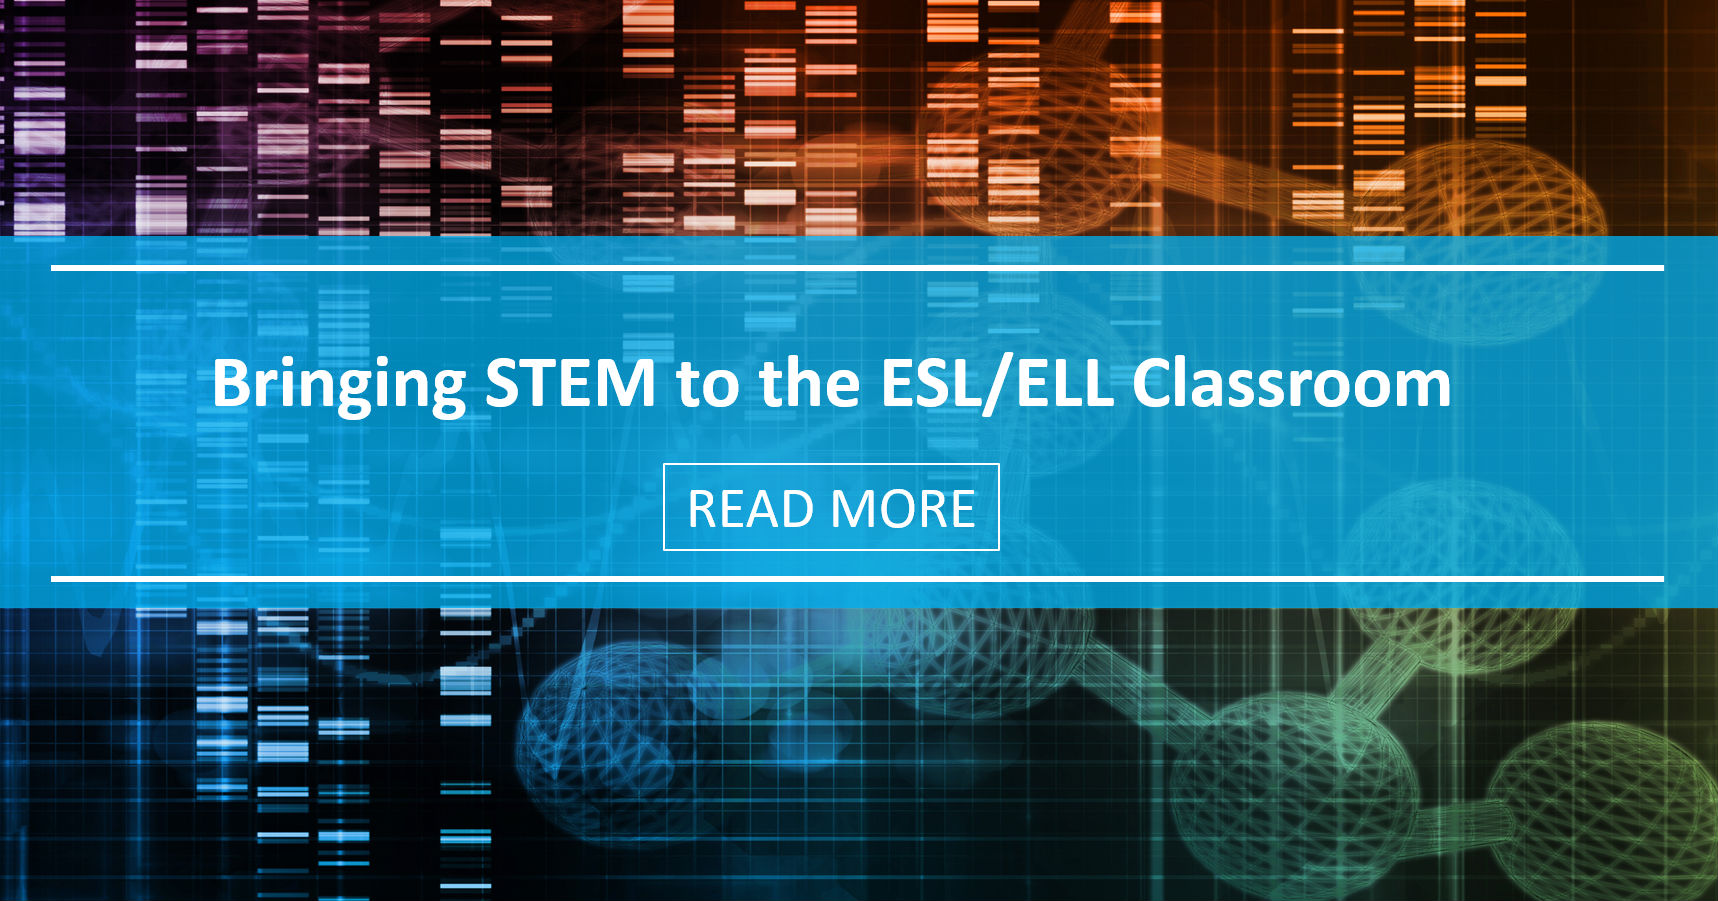 Bringing STEM to the ESL/ELL Classroom